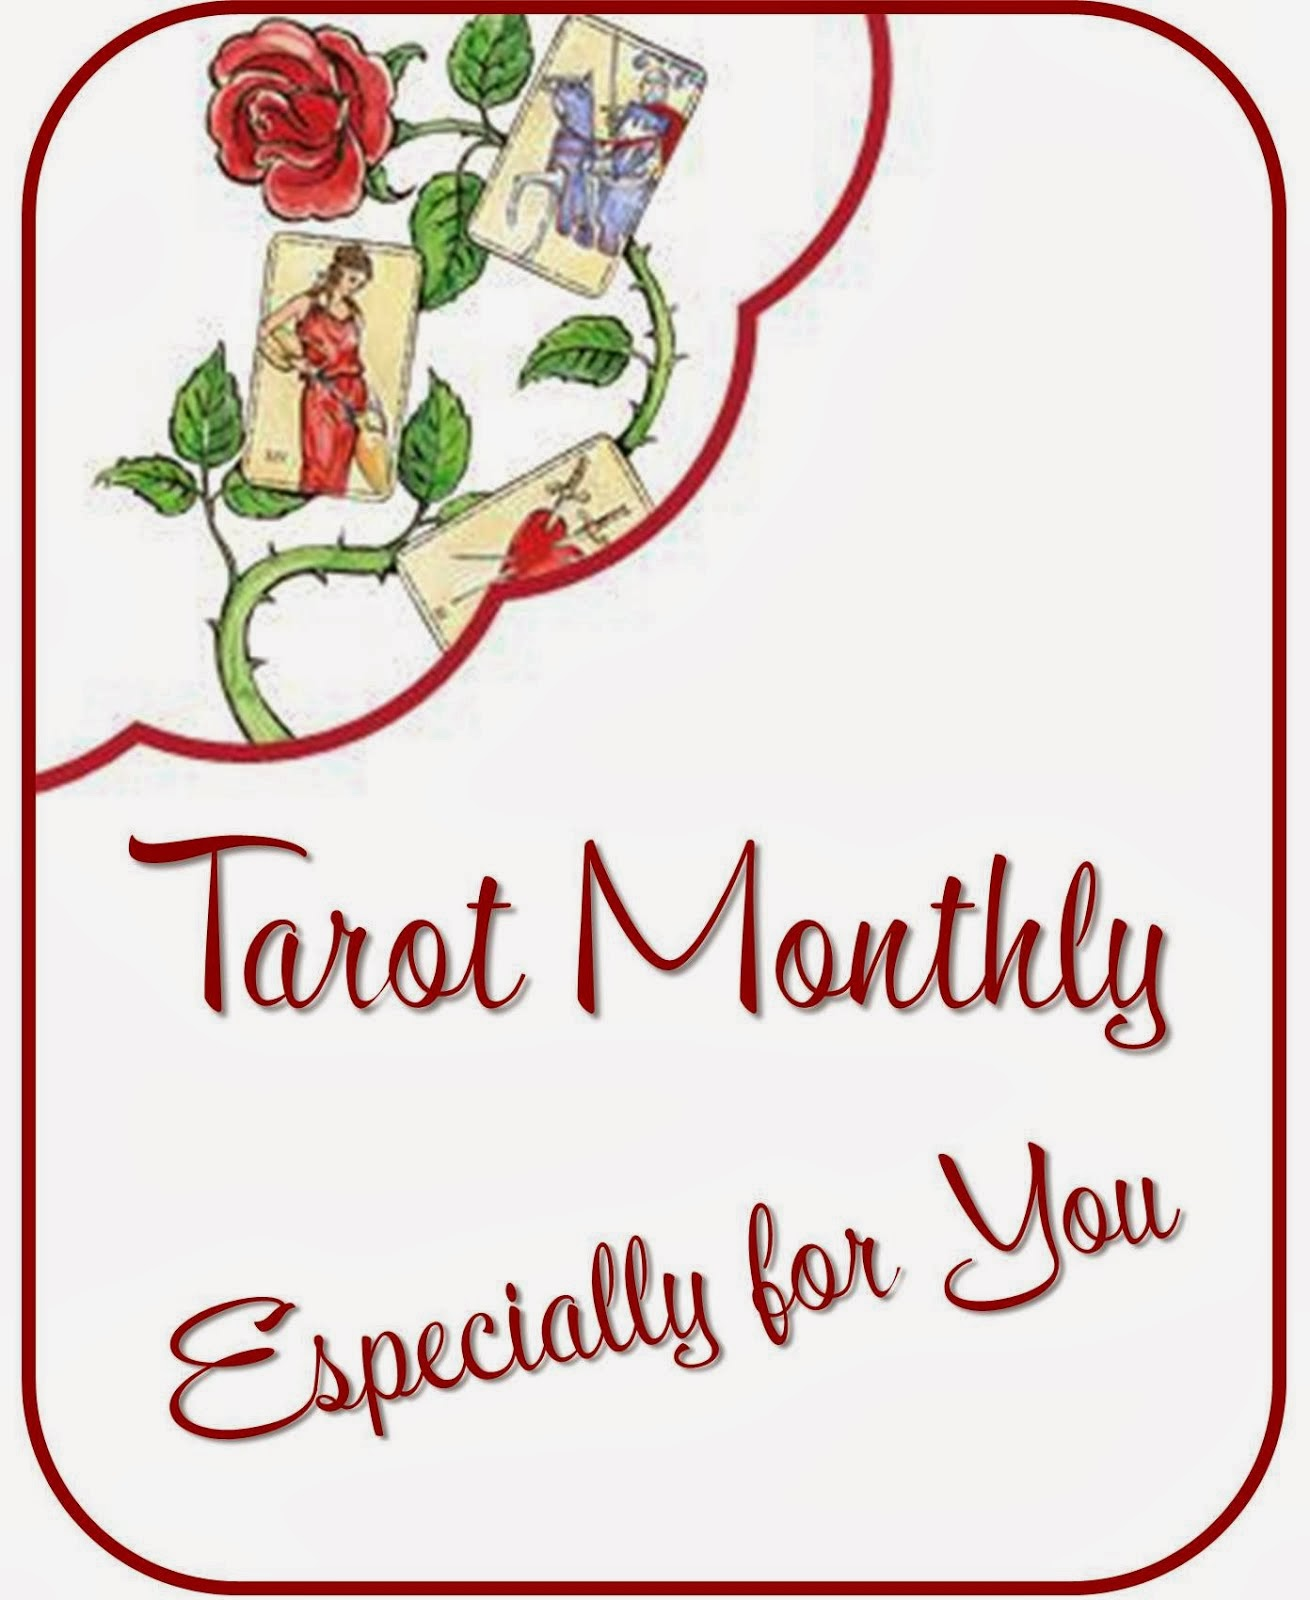 Tarot Monthly